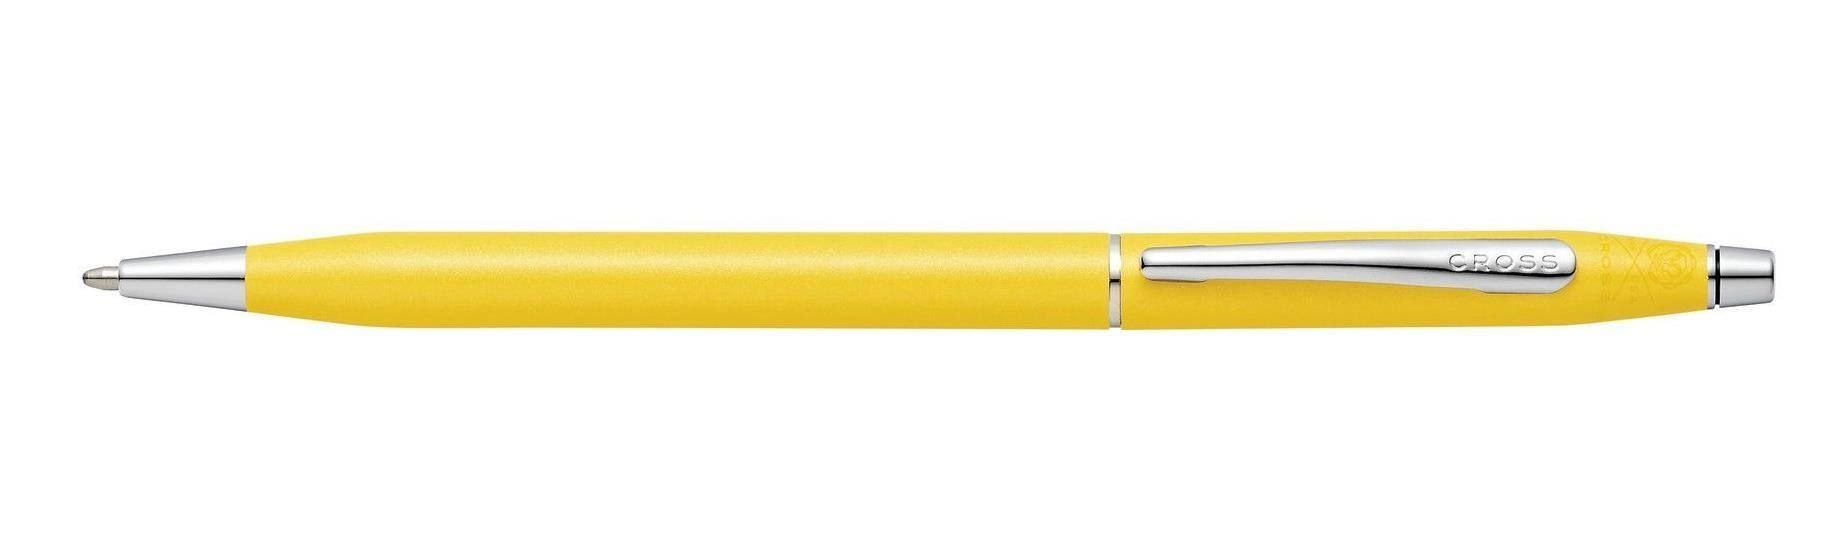 Cross Classic Century Sunrise Yellow  Pearlescent Lacquer  Pen In Box AT0082-126